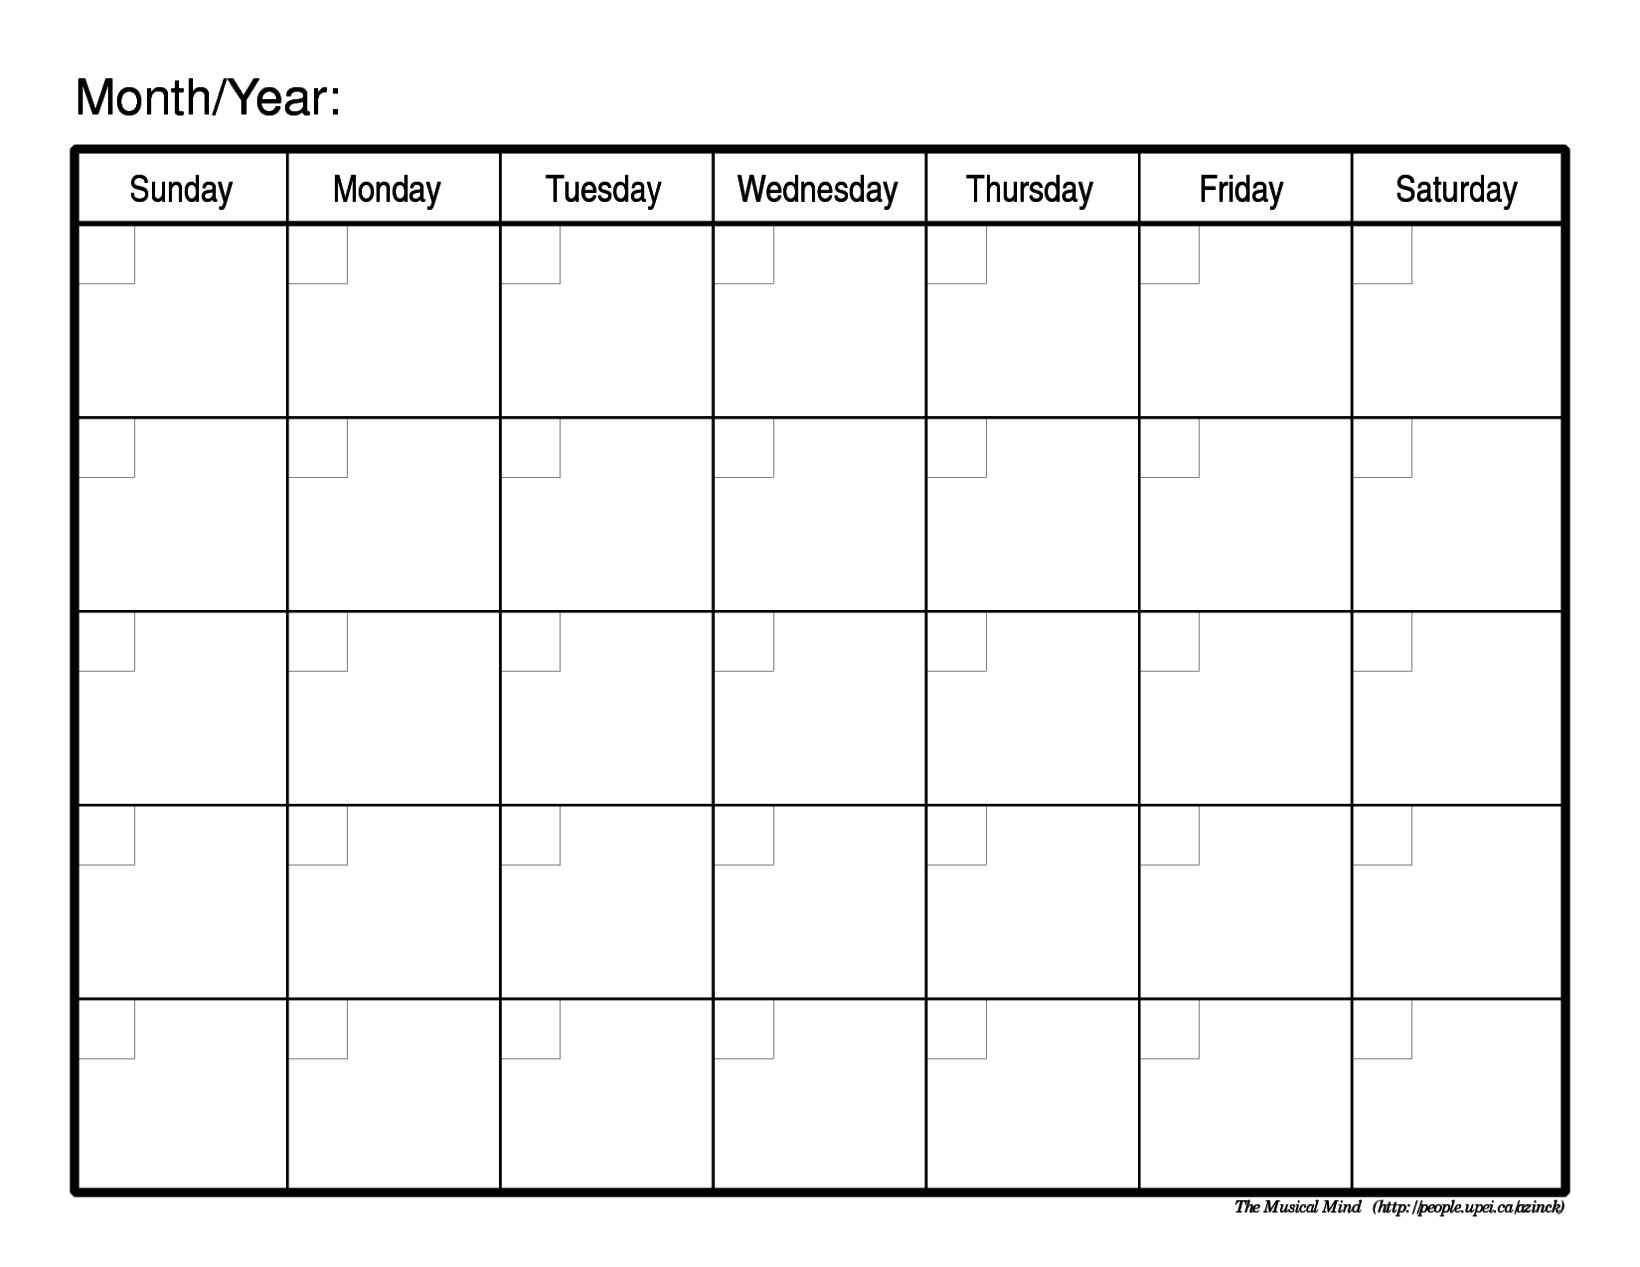 Schedule Template Free Printable Weekly Calendar Blank Monthly | Smorad in Full Size Blank Printable Calendar